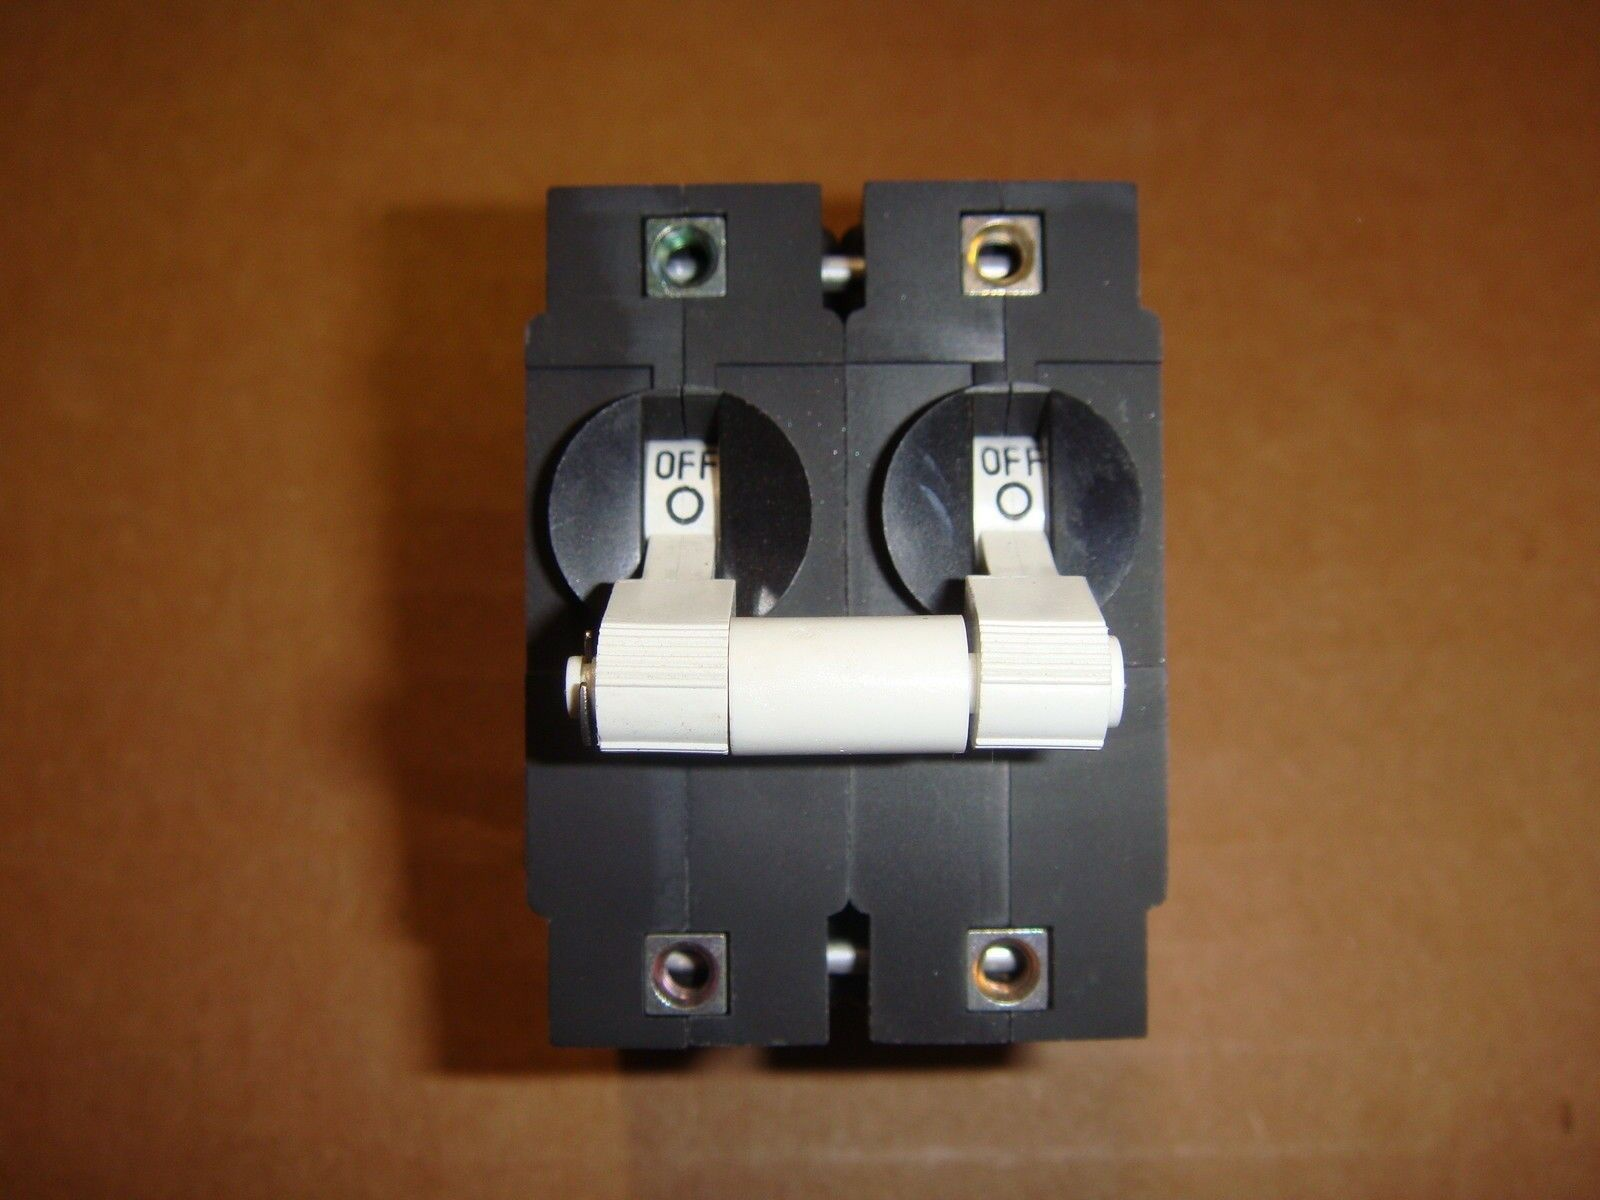 Airpax 15 Amp Dual Boat Circuit Breaker Switch White Toggle, IEGHF66-33501-15-V